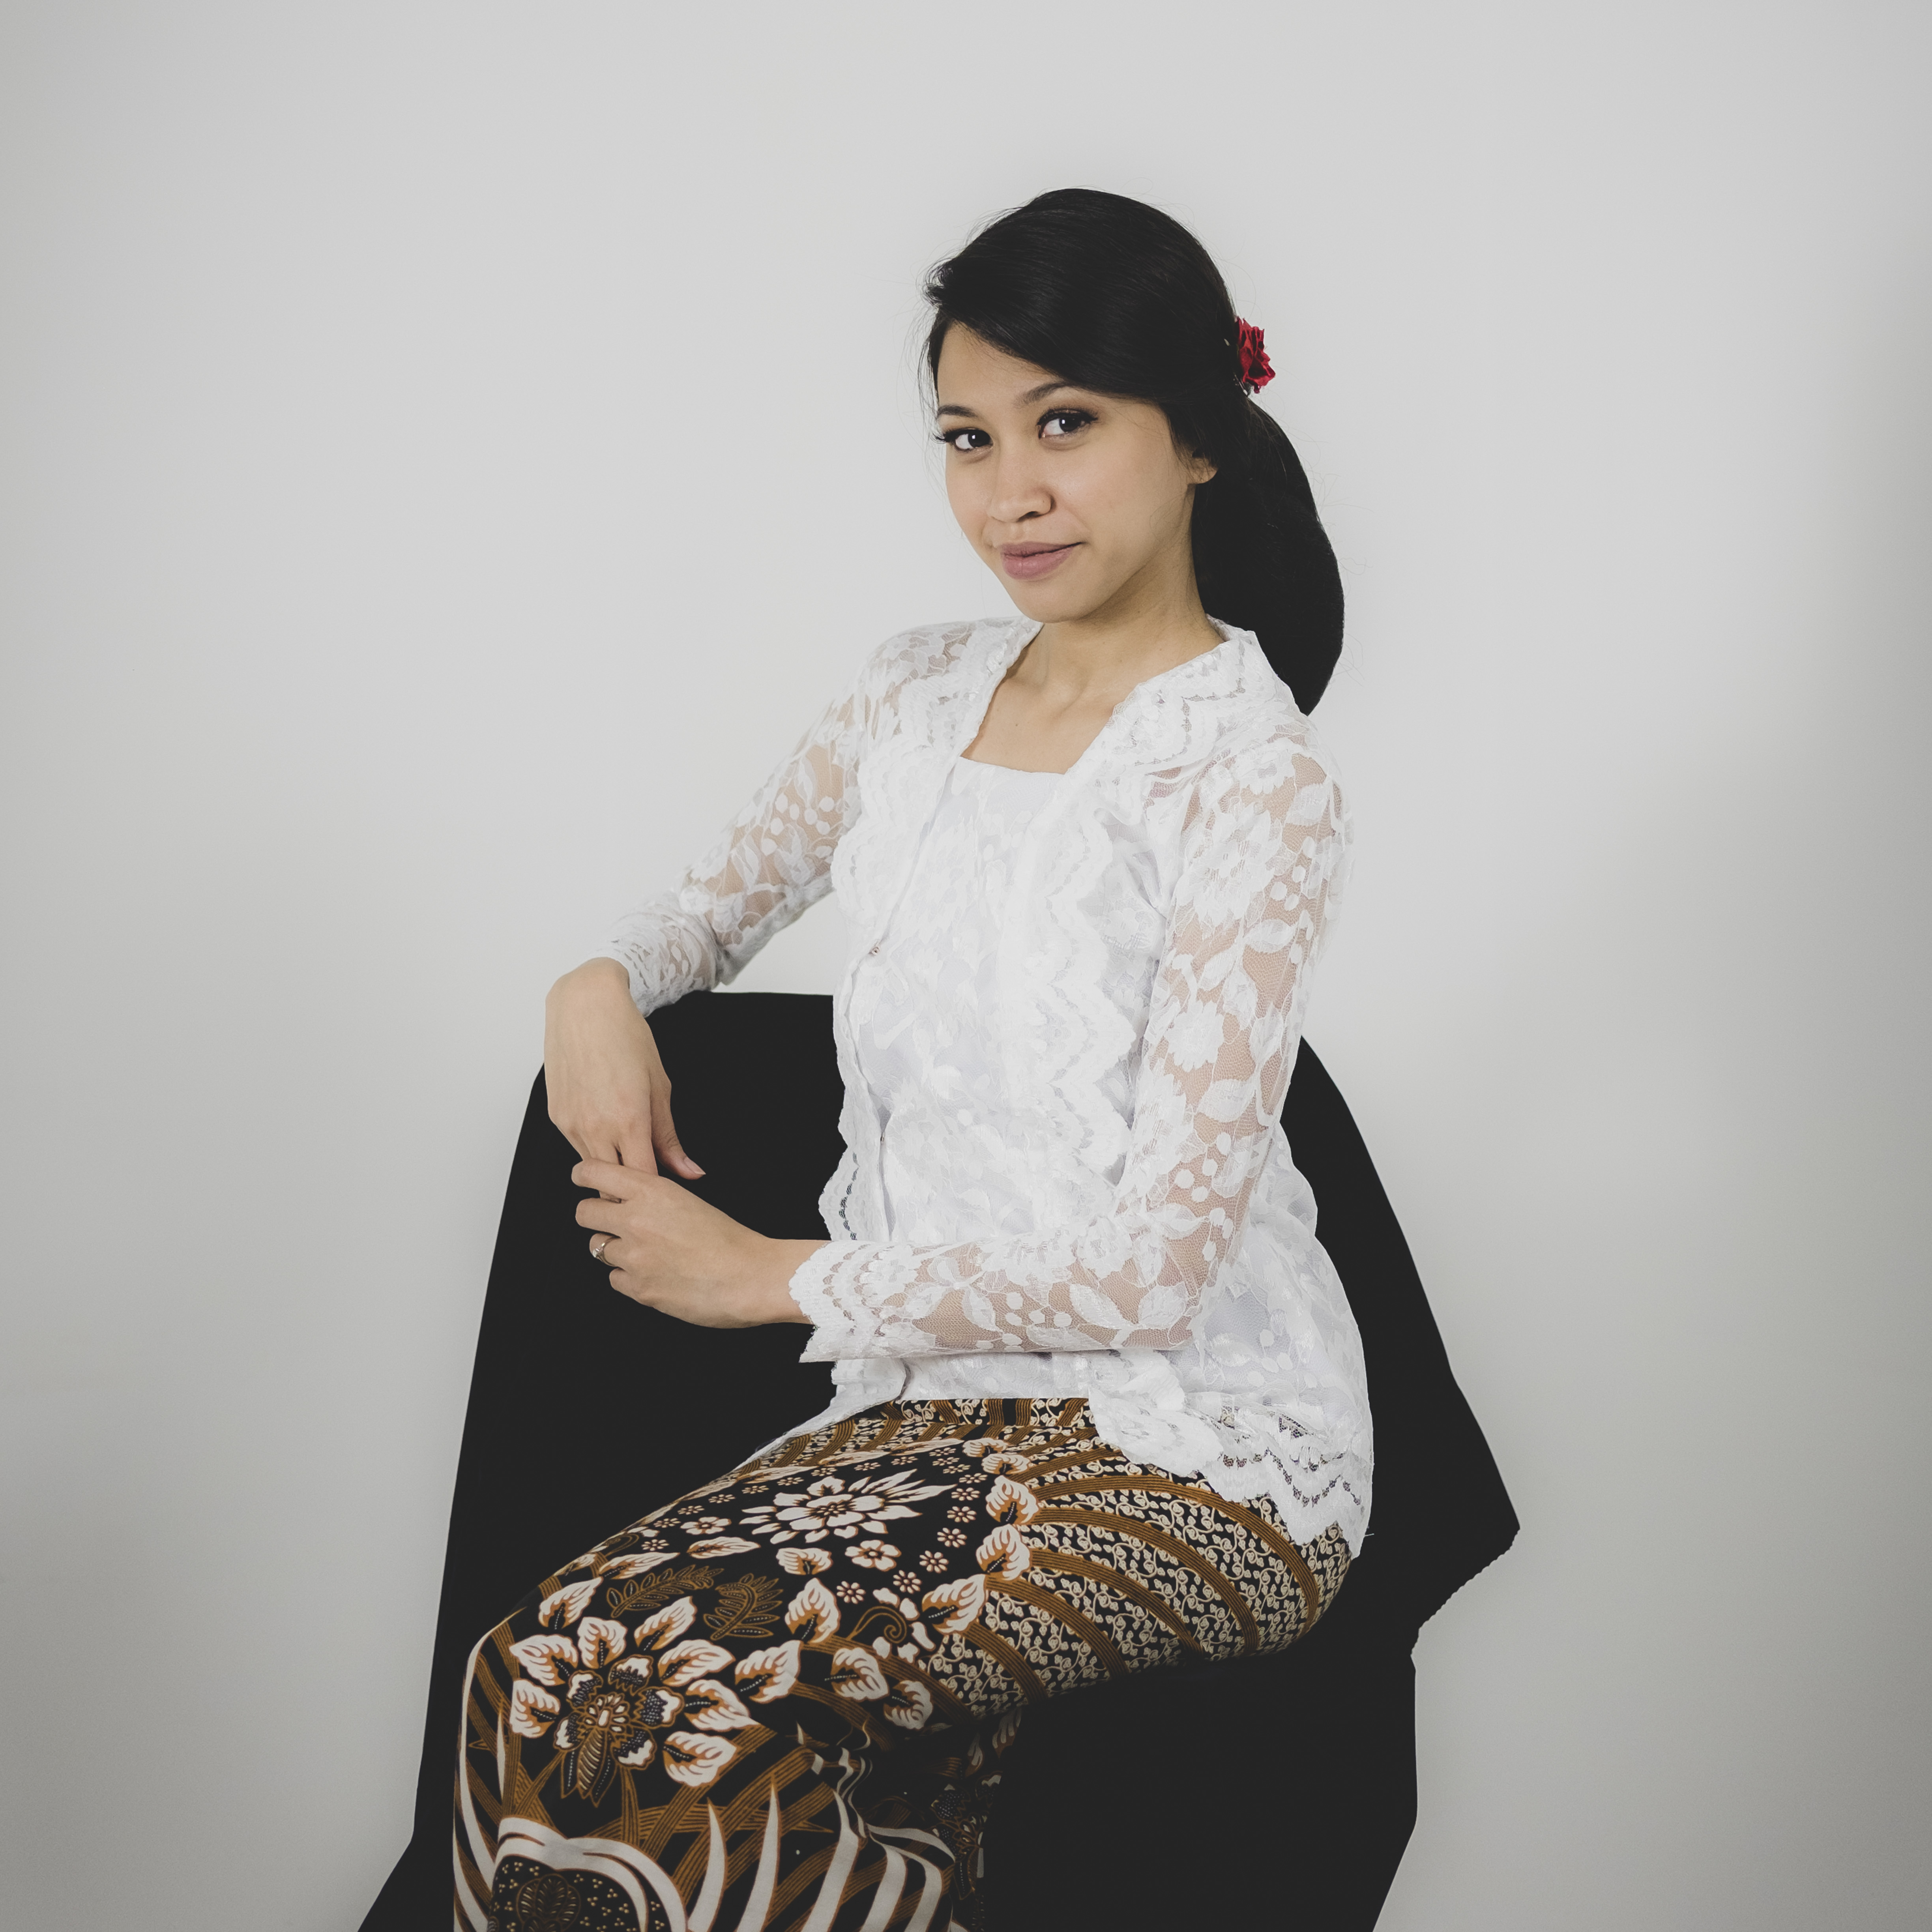 Nadiah, a graduate from TaF.tc's Diploma in Apparel Design and Product Development and founder of ELNADYAH